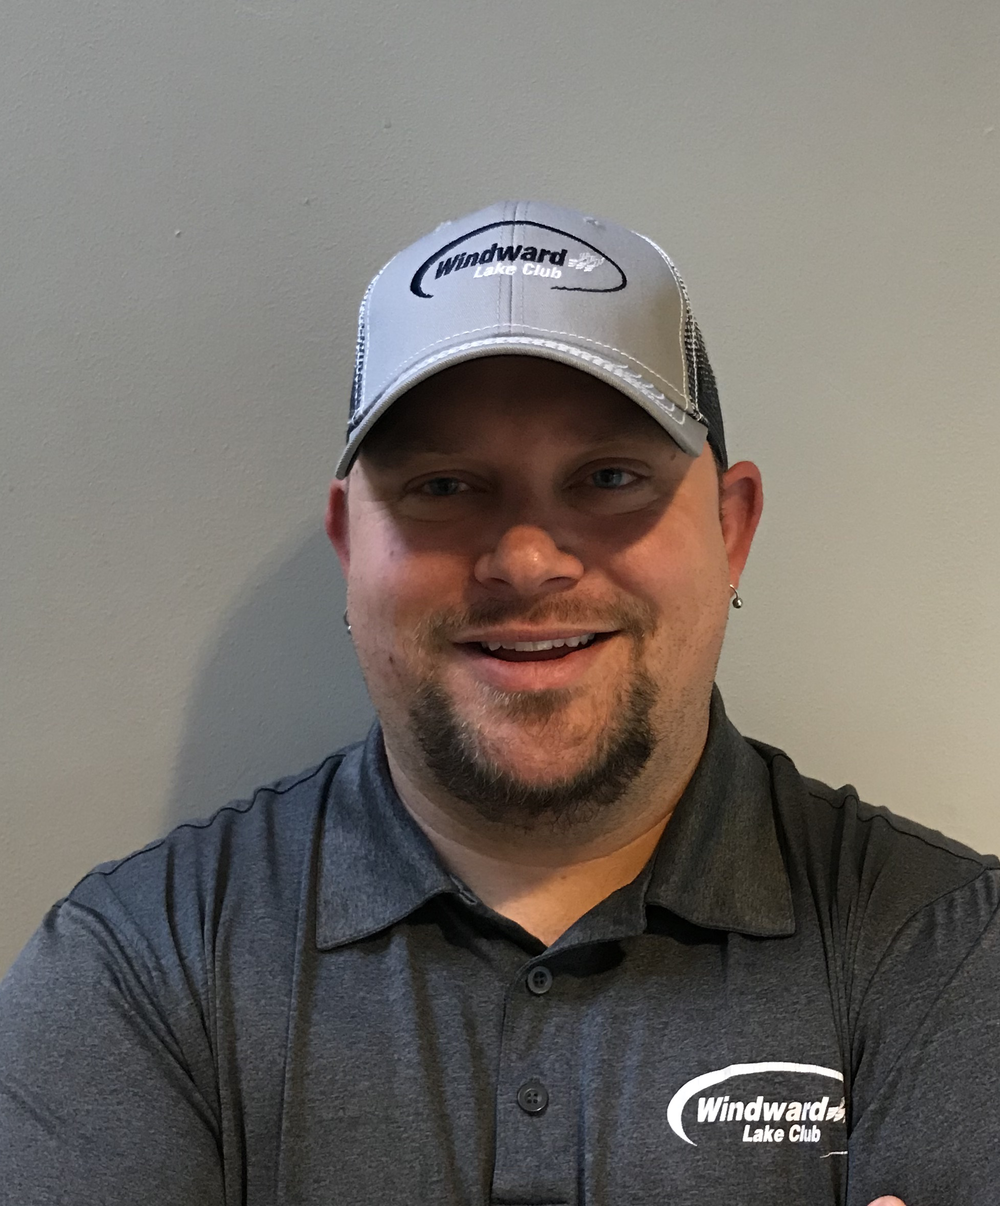 Andy Weiberg, General Manager